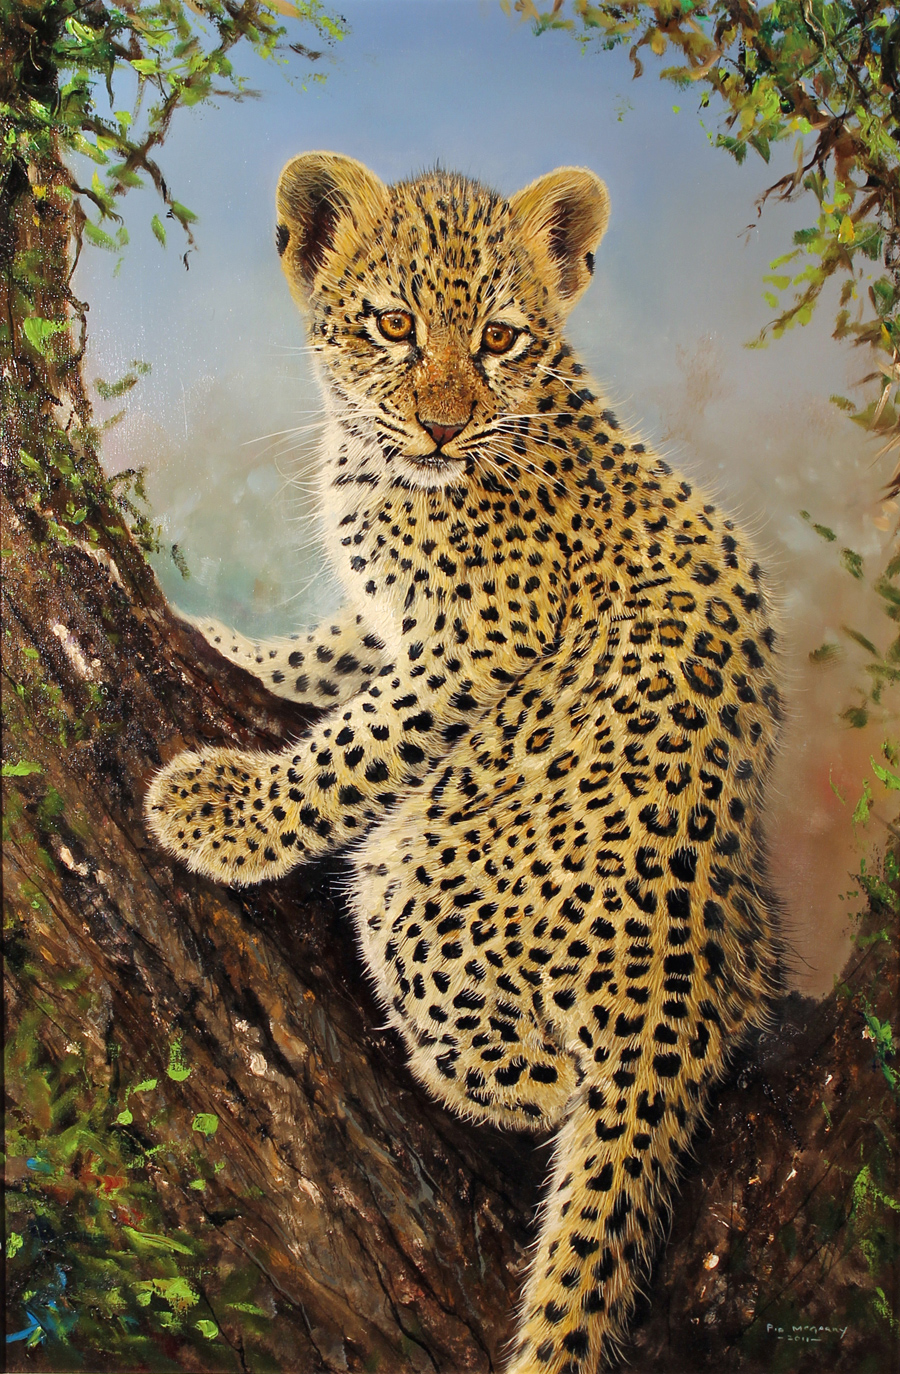 Pip McGarry, Original oil painting on canvas, Leopard Cub in a Tree, click to enlarge